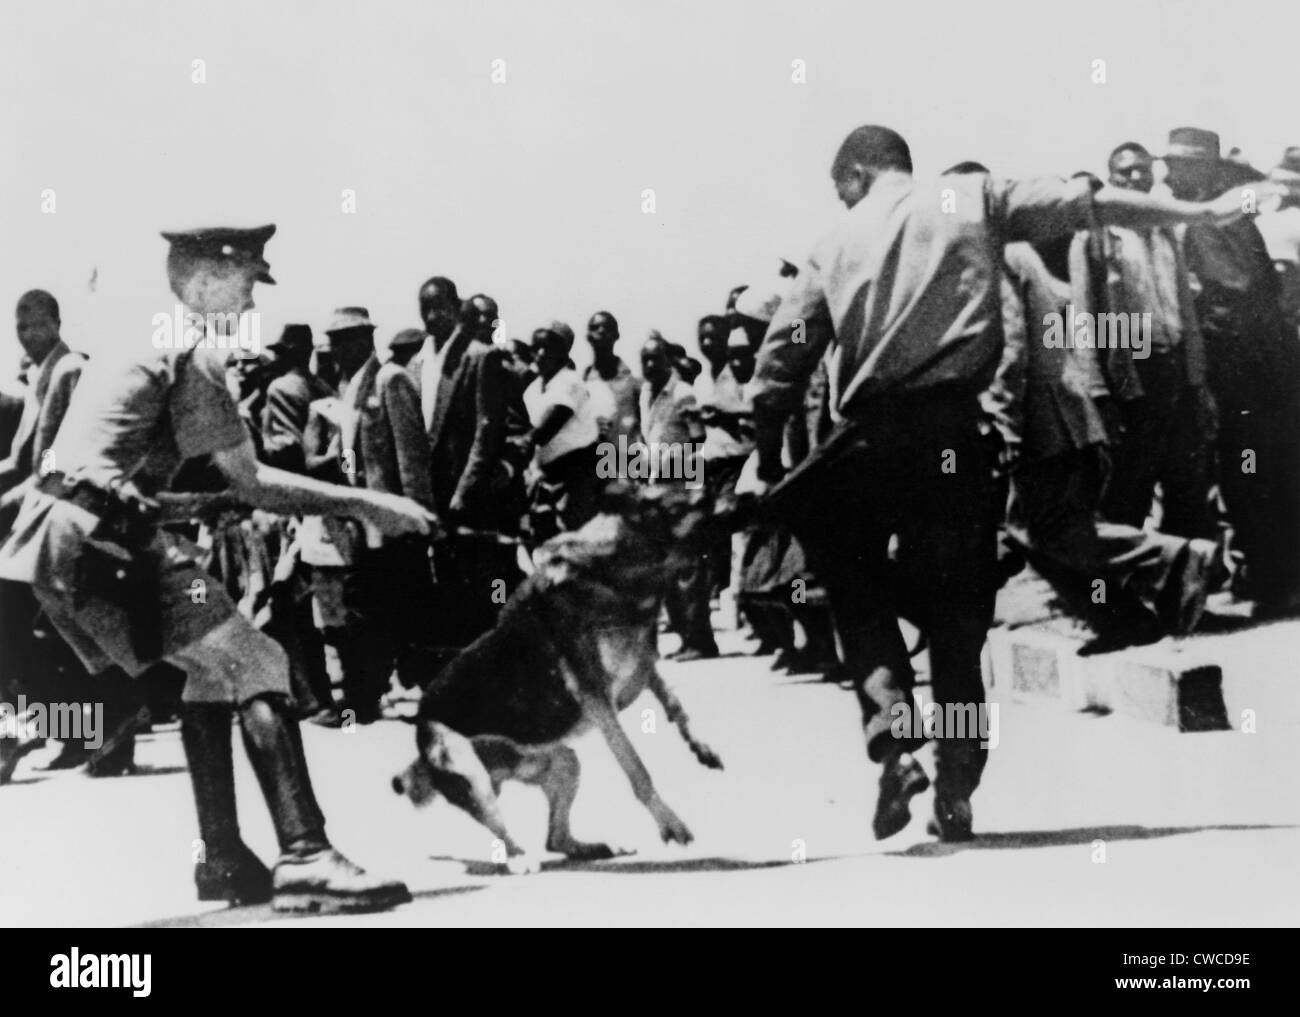 Police dog attacking a Black Zimbabwean man during a demonstration in 1965, the year a White minority led by Ian - Stock Image